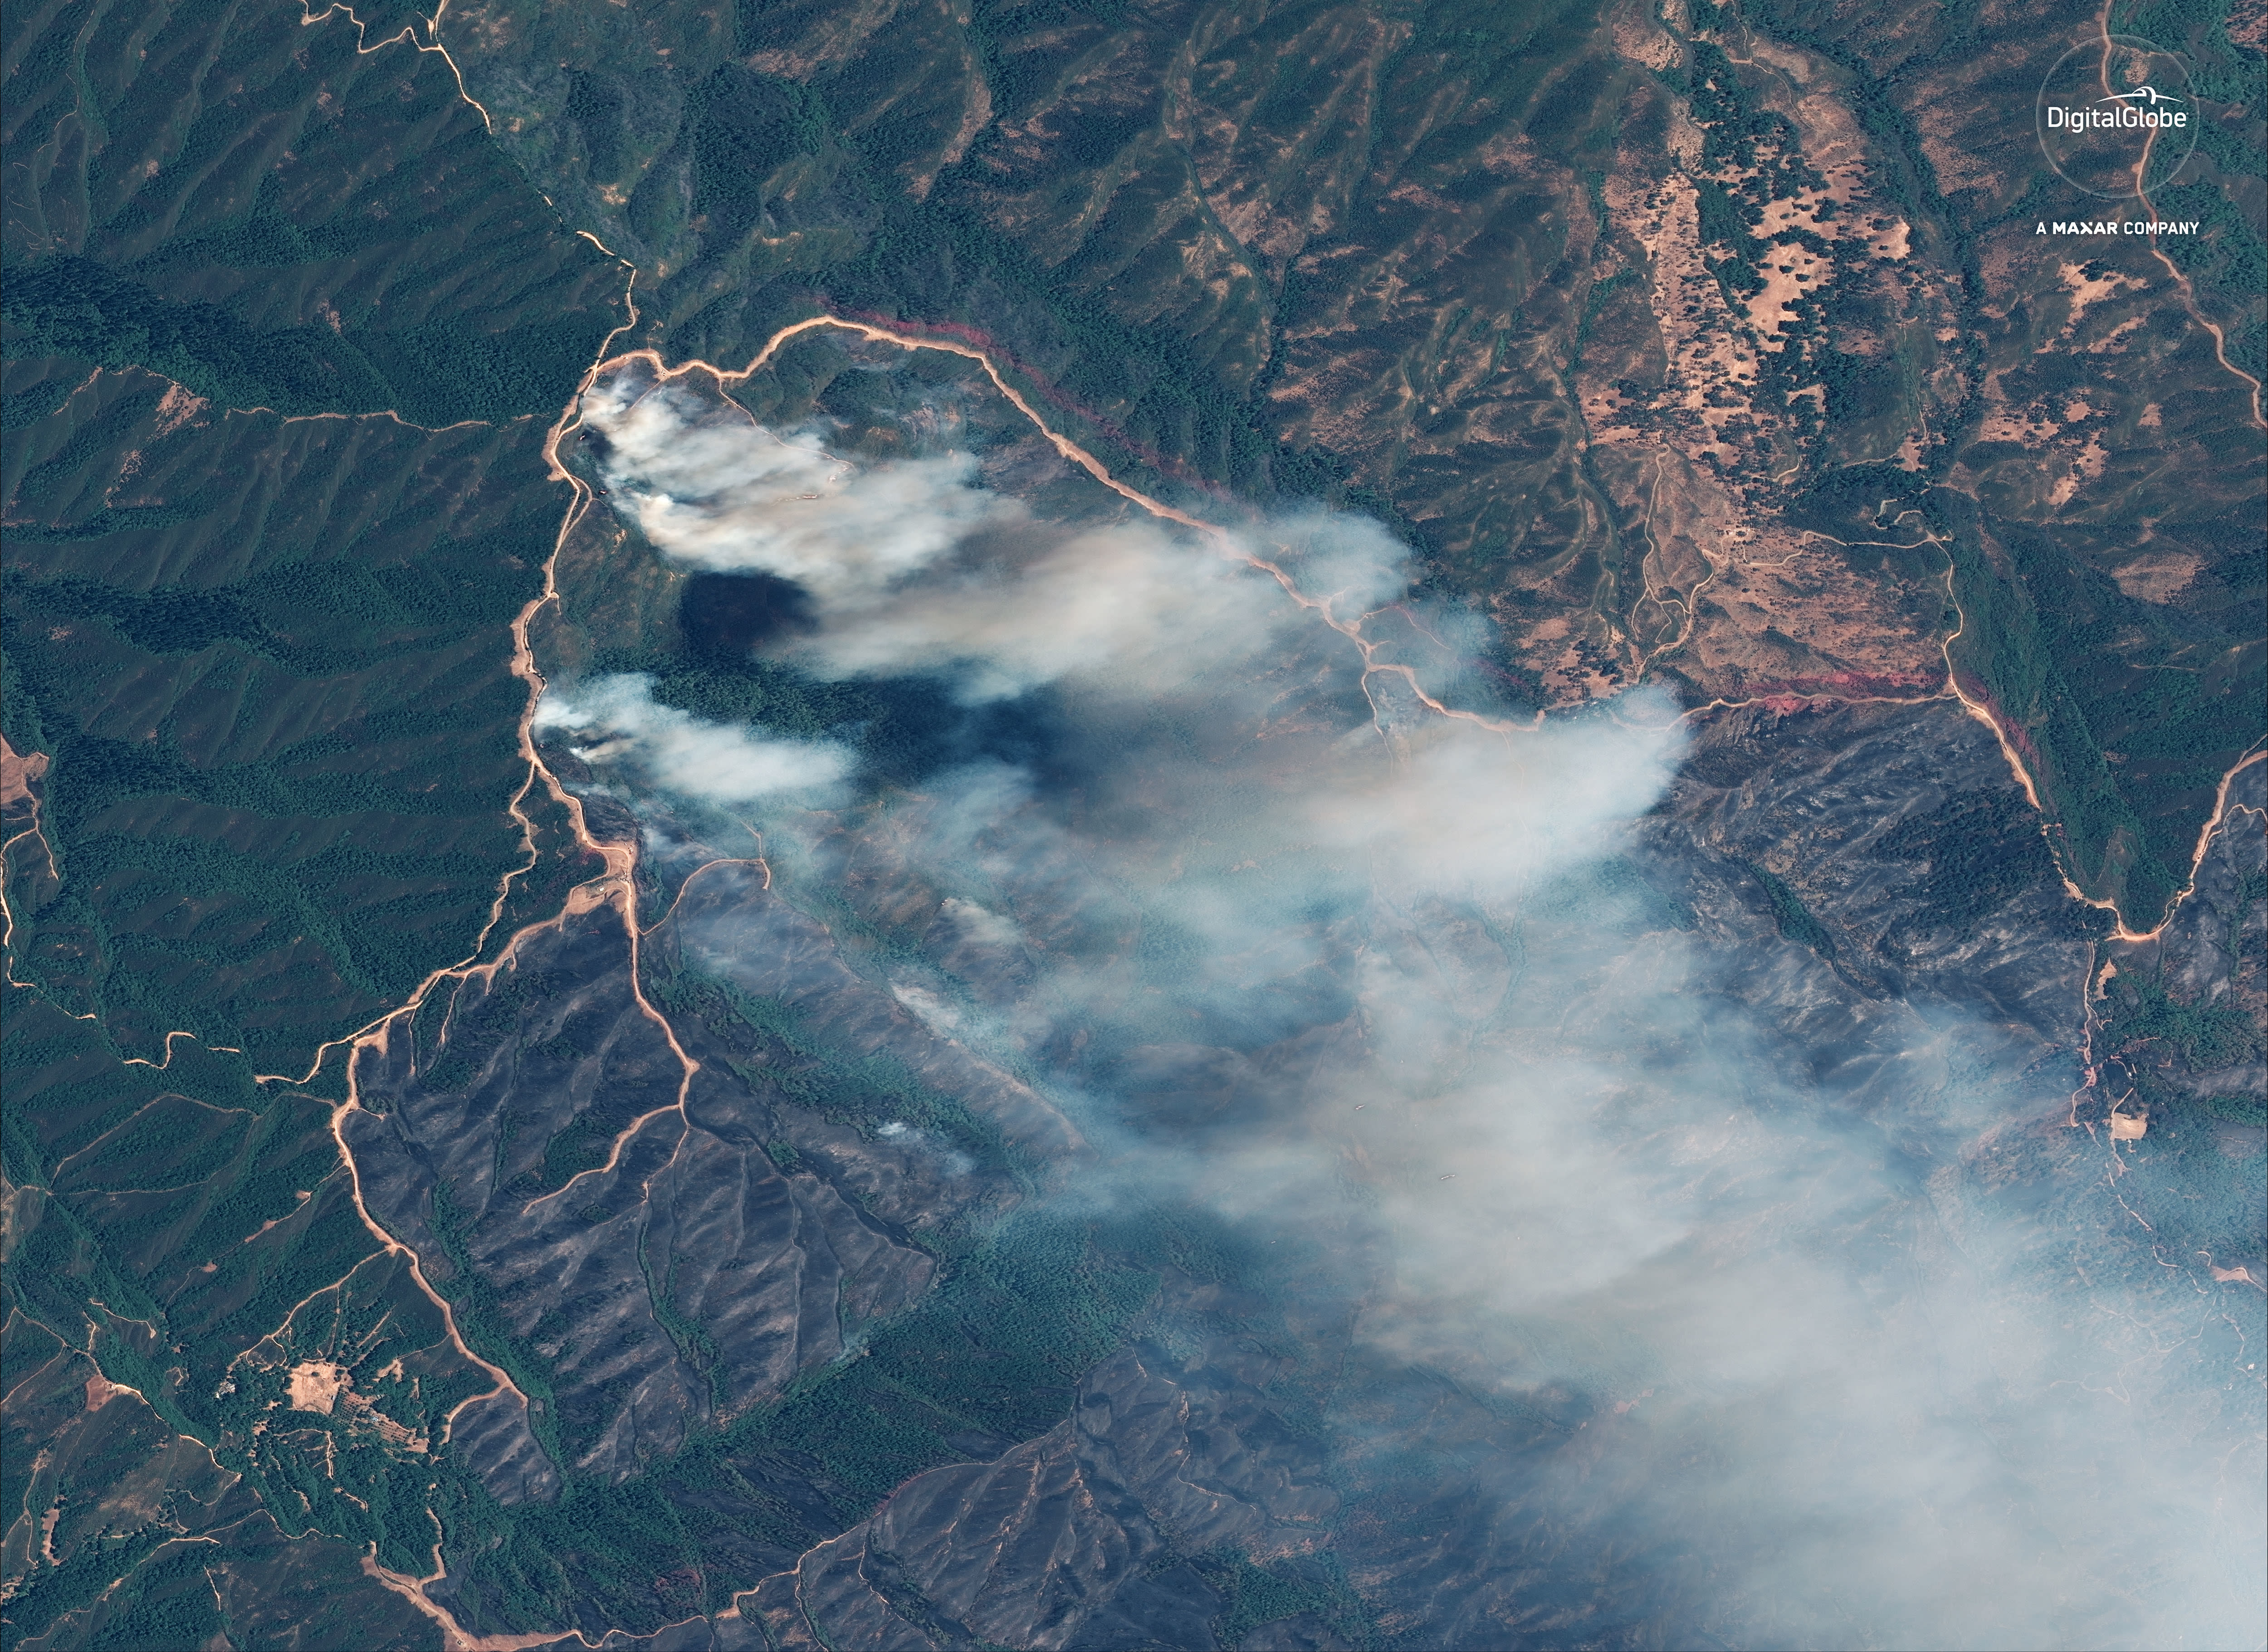 """This Aug. 6, 2018 satellite image provided by DigitalGlobe shows plumes of smoke from the """"River Fire"""" burning vegetation west of Clear Lake, Calif. The dark brown areas at center, encircled by lighter-colored bulldozed trails, shows burned vegetation around the South Cow Mountain recreation area. (Satellite Image ©2018 DigitalGlobe, a Maxar company, via AP)"""